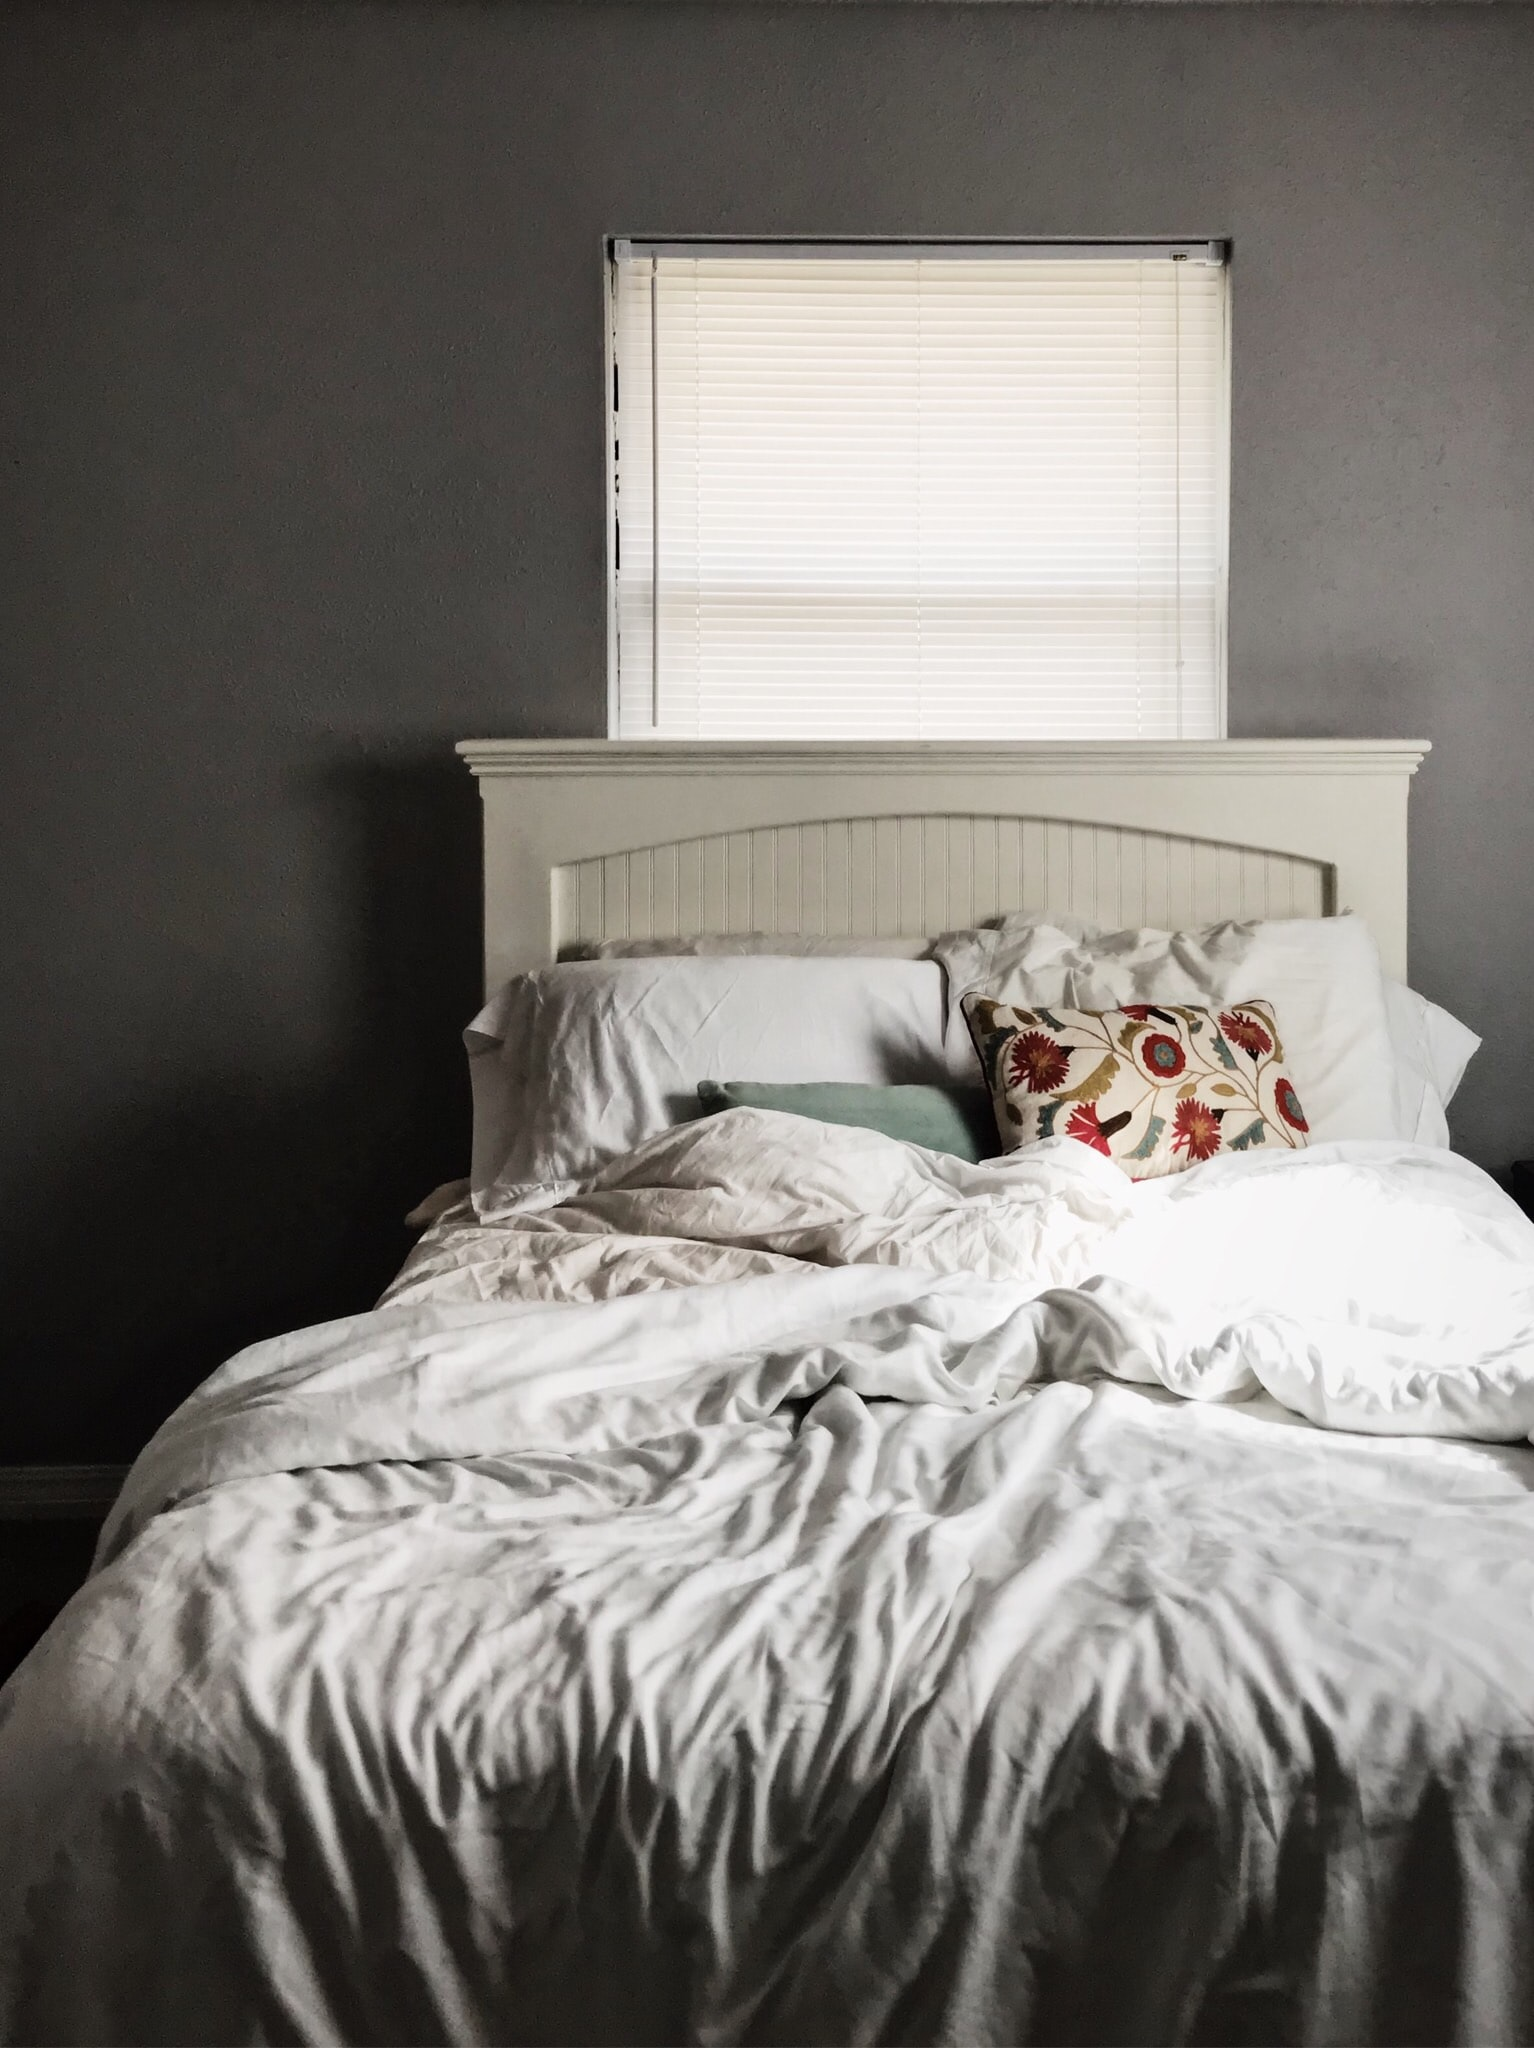 white and gray bed sheet with pillow on bed